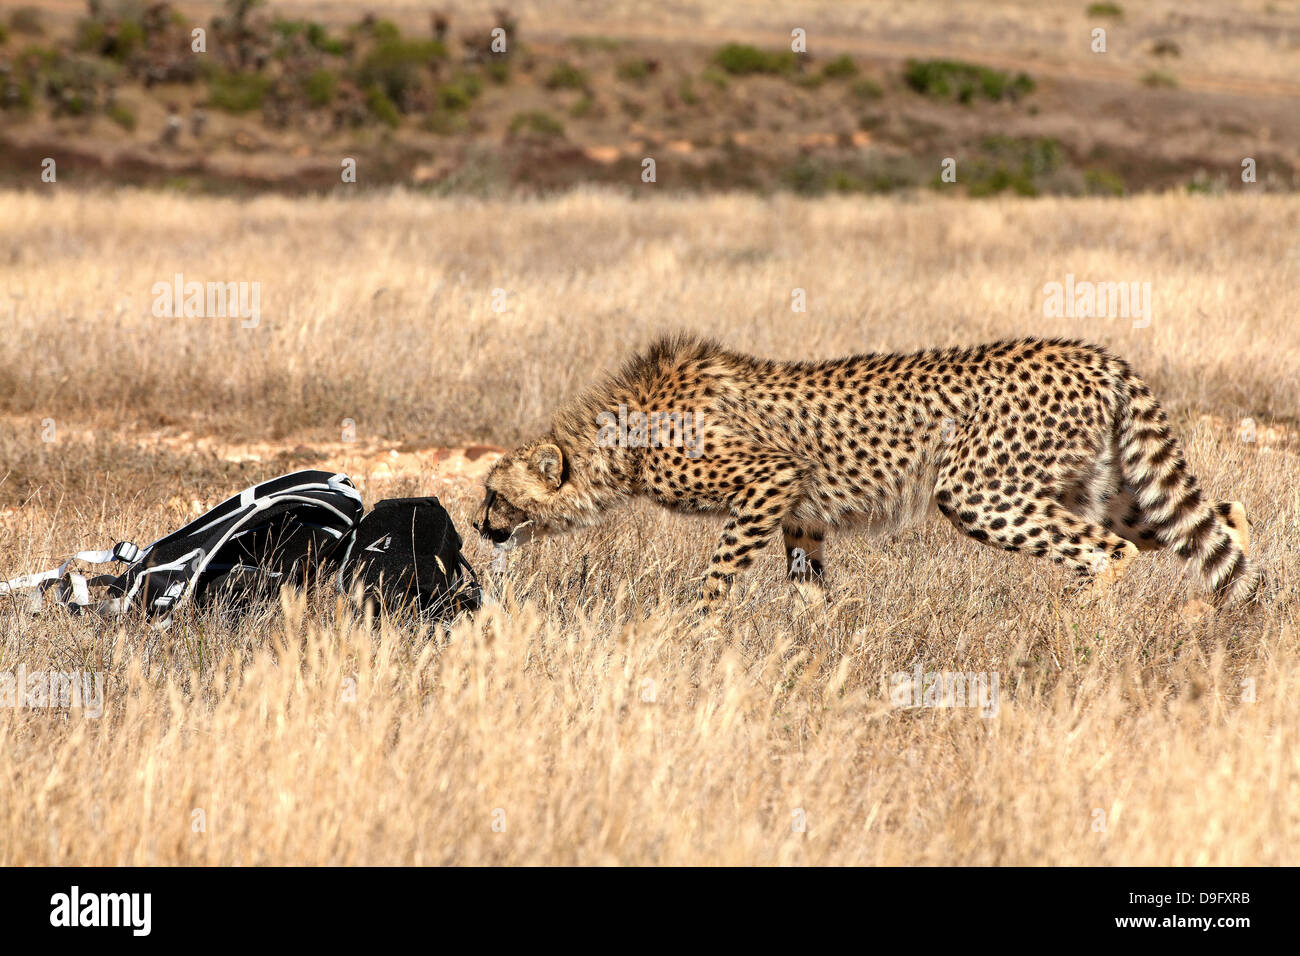 Curious cheetah sniffing at nature lover's backpack, Western Cape, South Africa, Africa - Stock Image